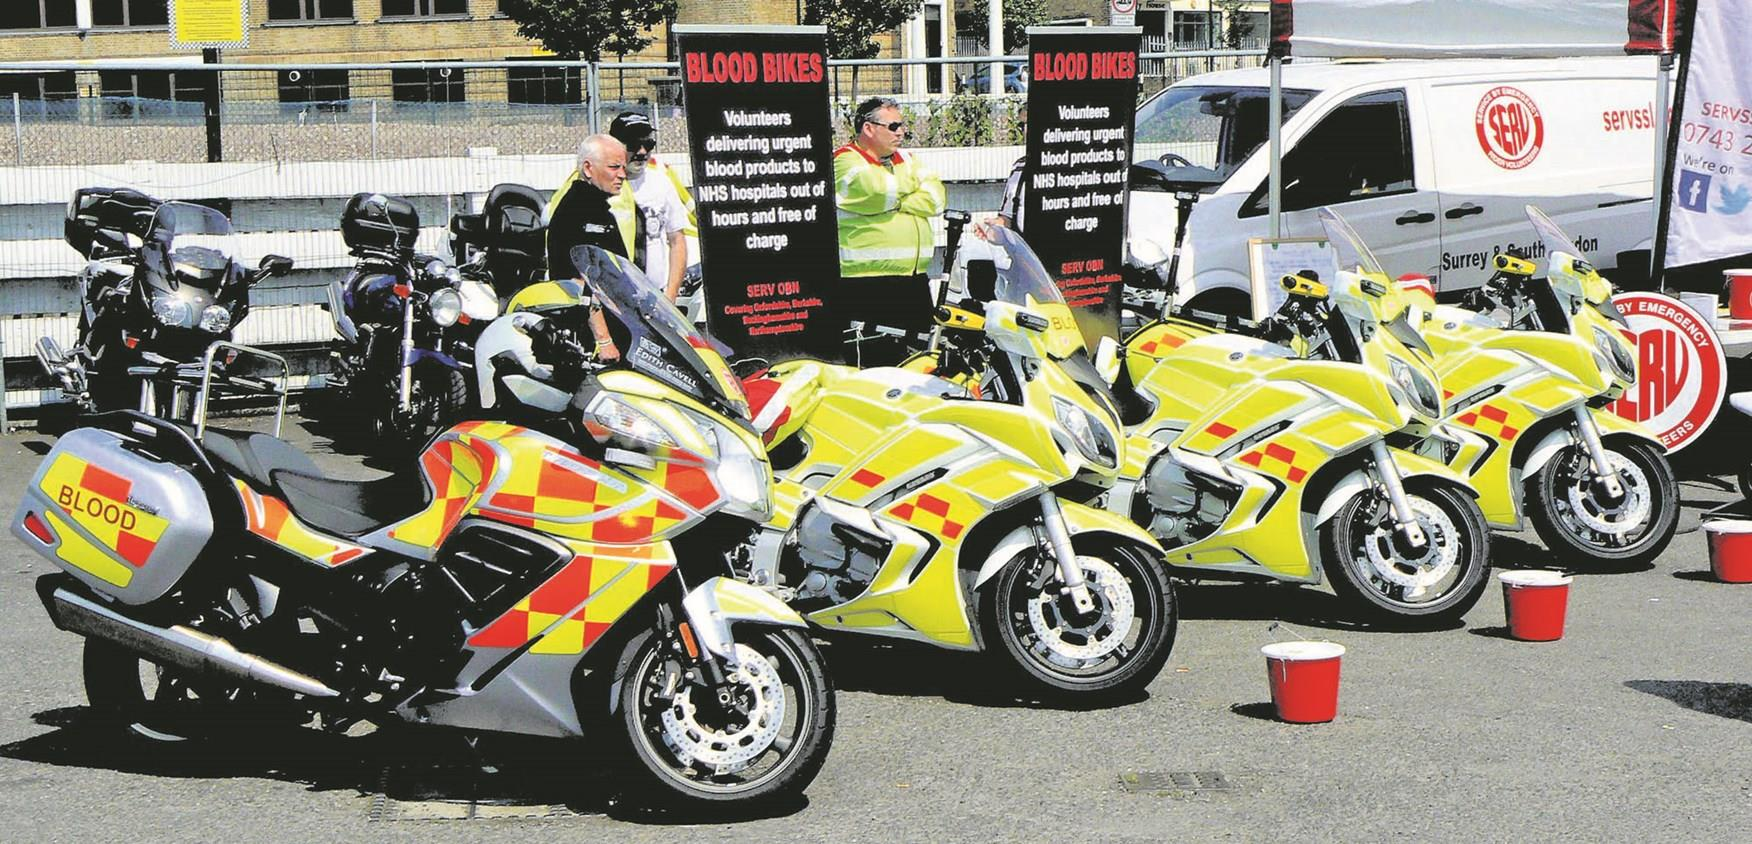 A collection of Blood Bikers